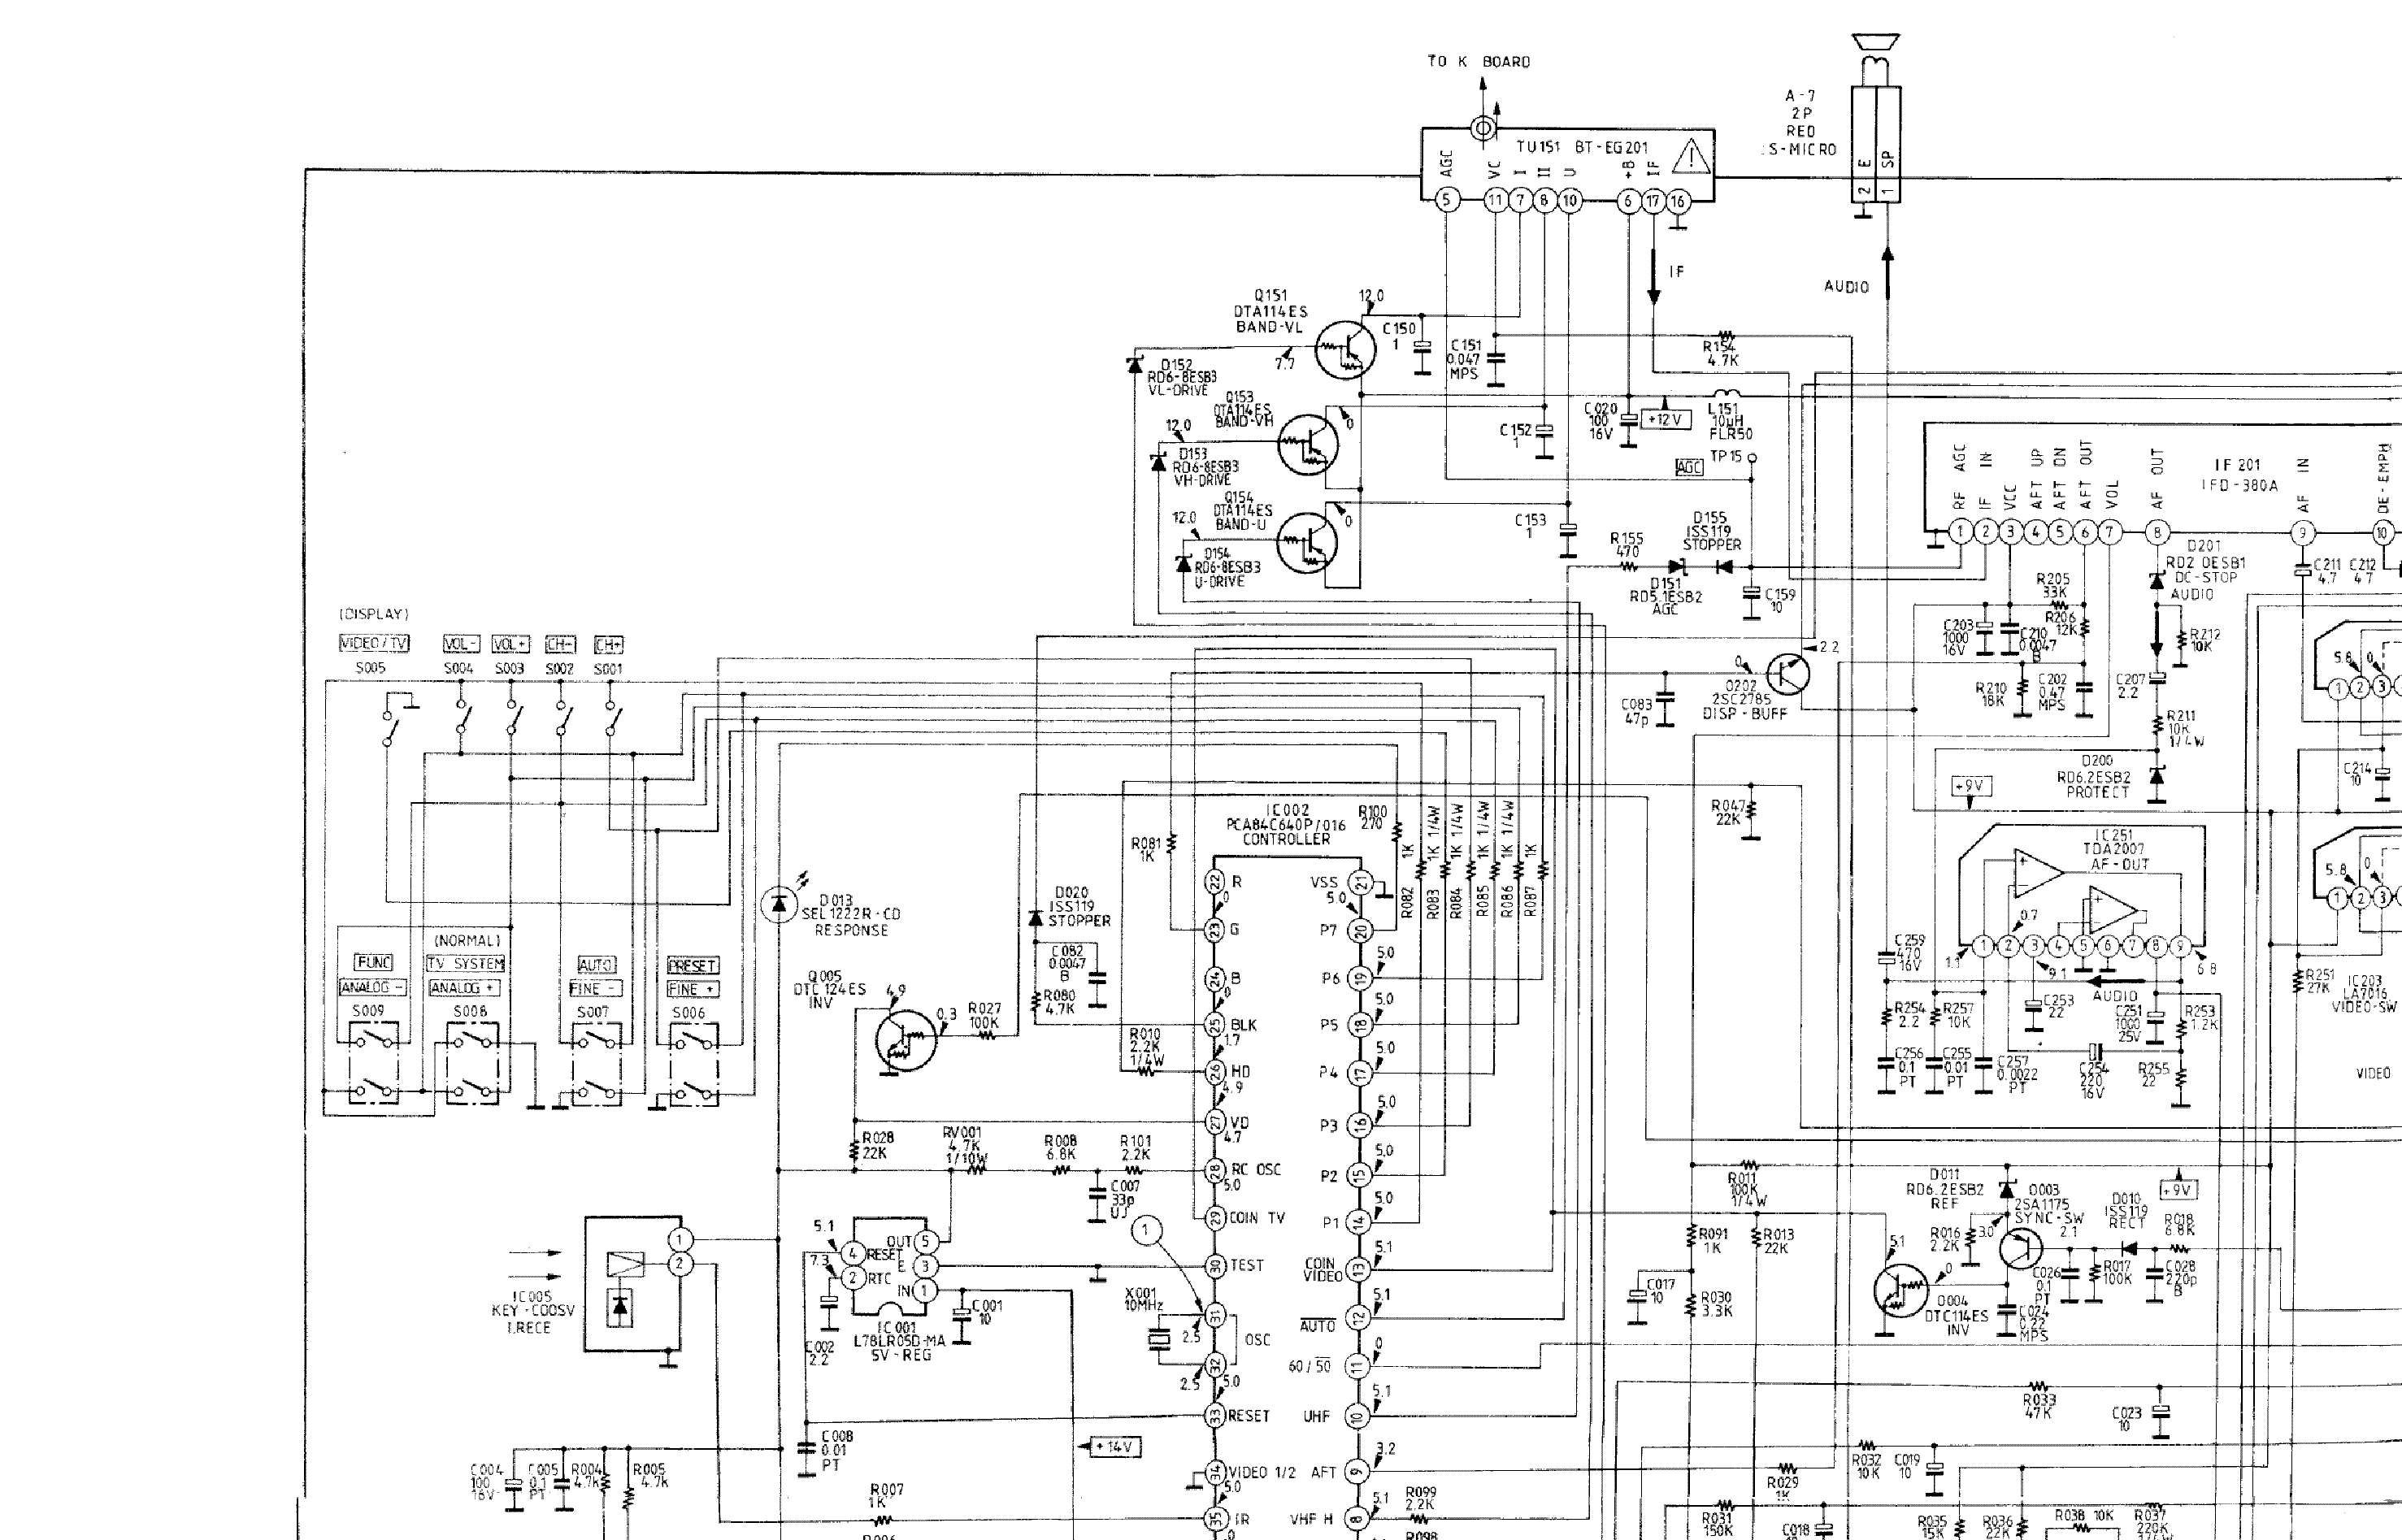 SONY KV-2184MT RM SCH Service Manual download, schematics